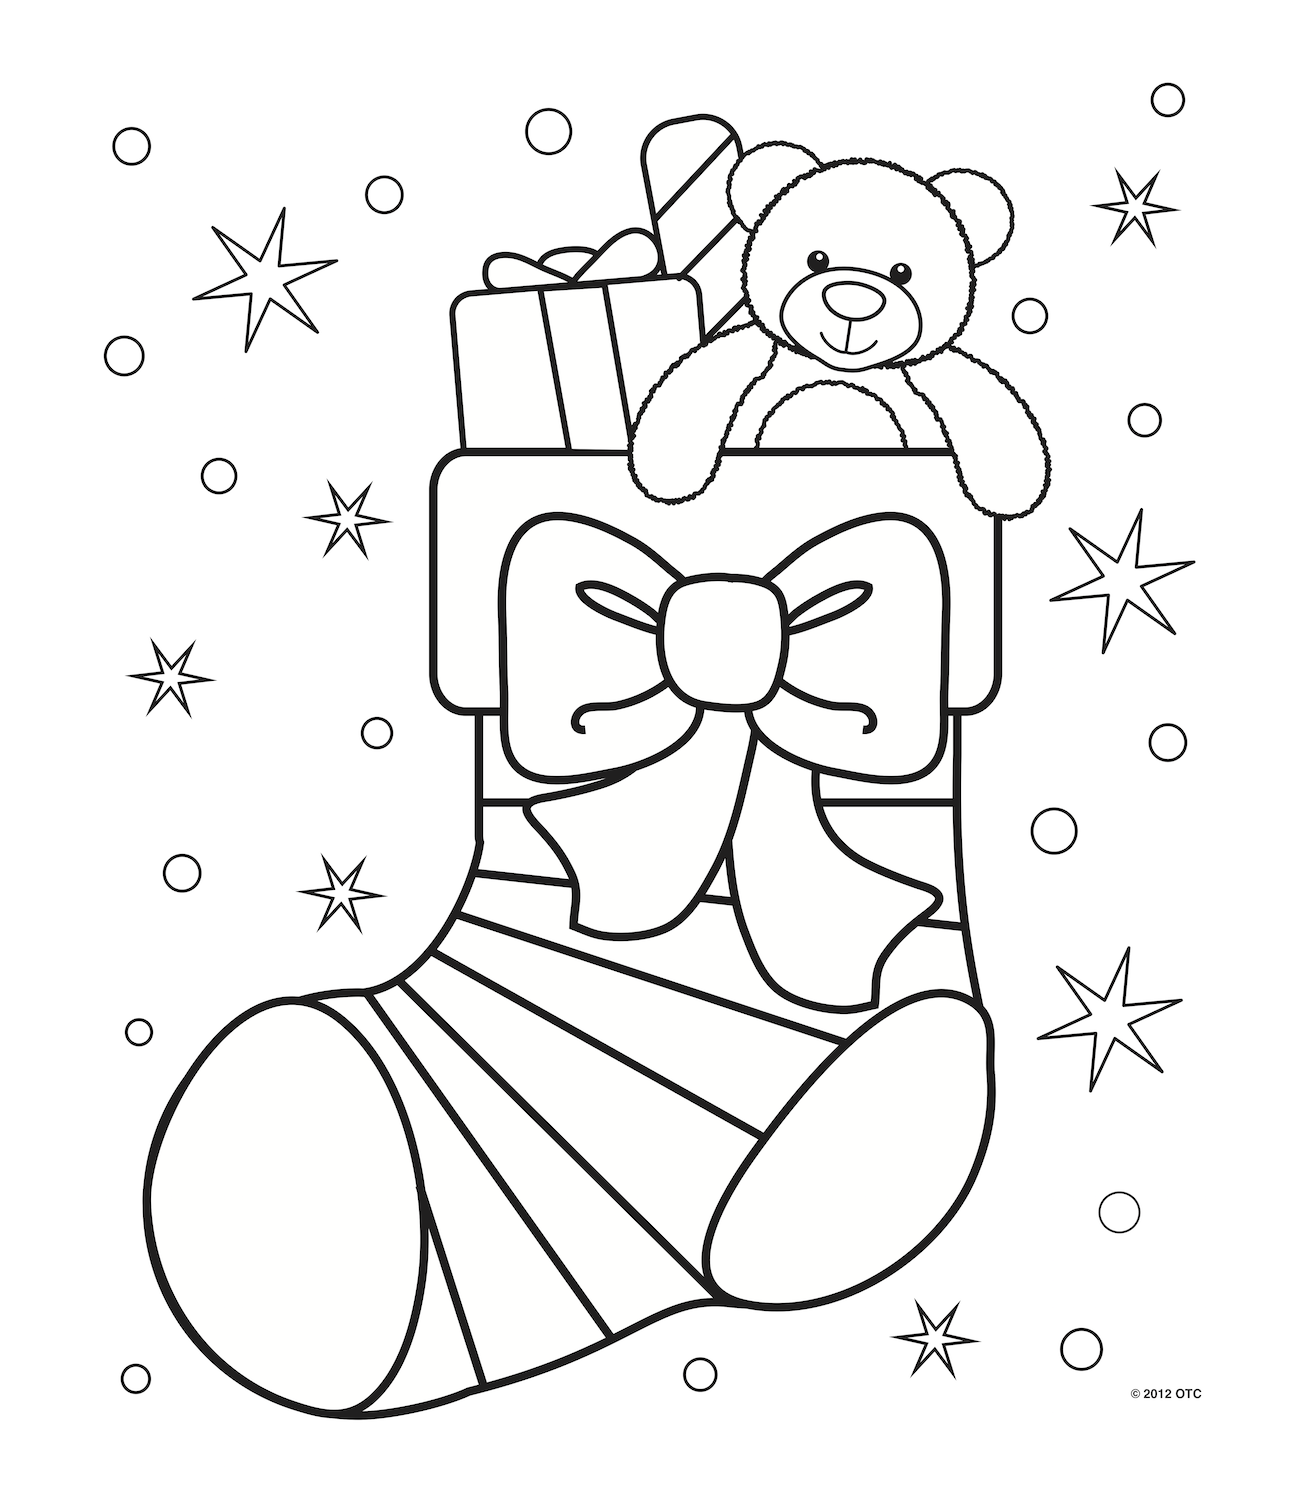 1289x1500 Xreindeer Coloring Pages Pagespeed Ic